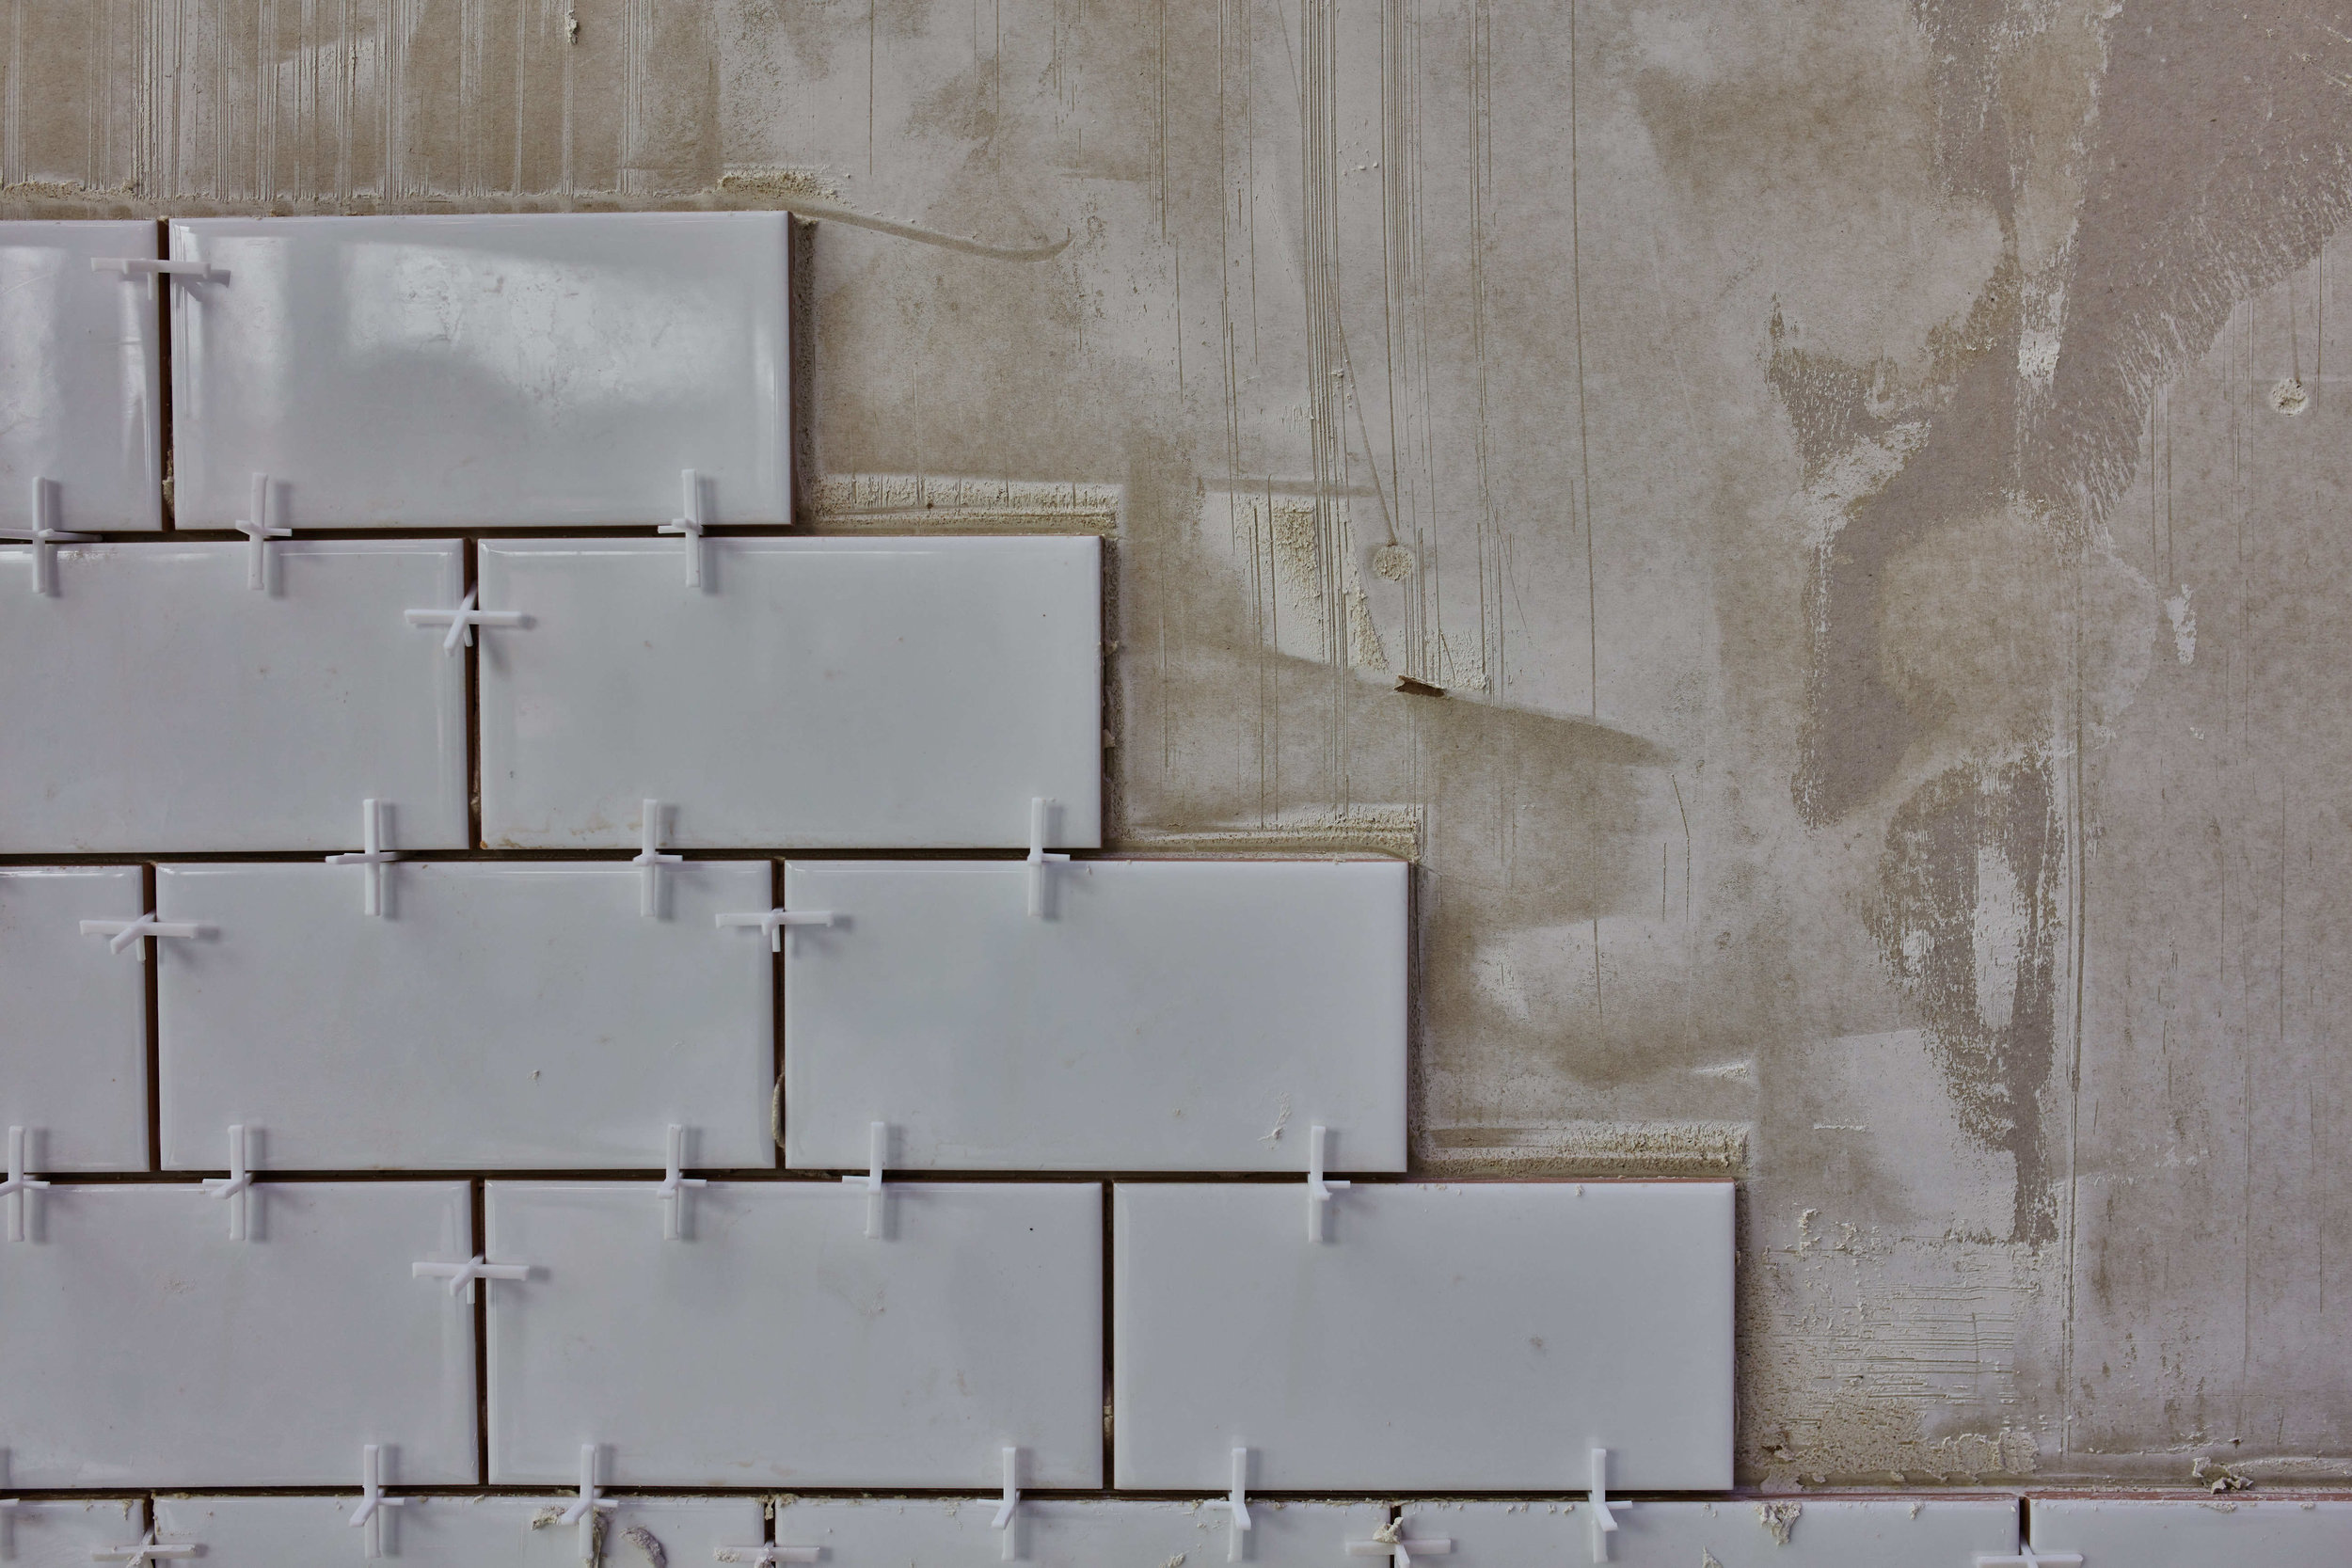 Gray Subway Tiles With Spacers Being Installed as Backsplash (Large Size).jpg